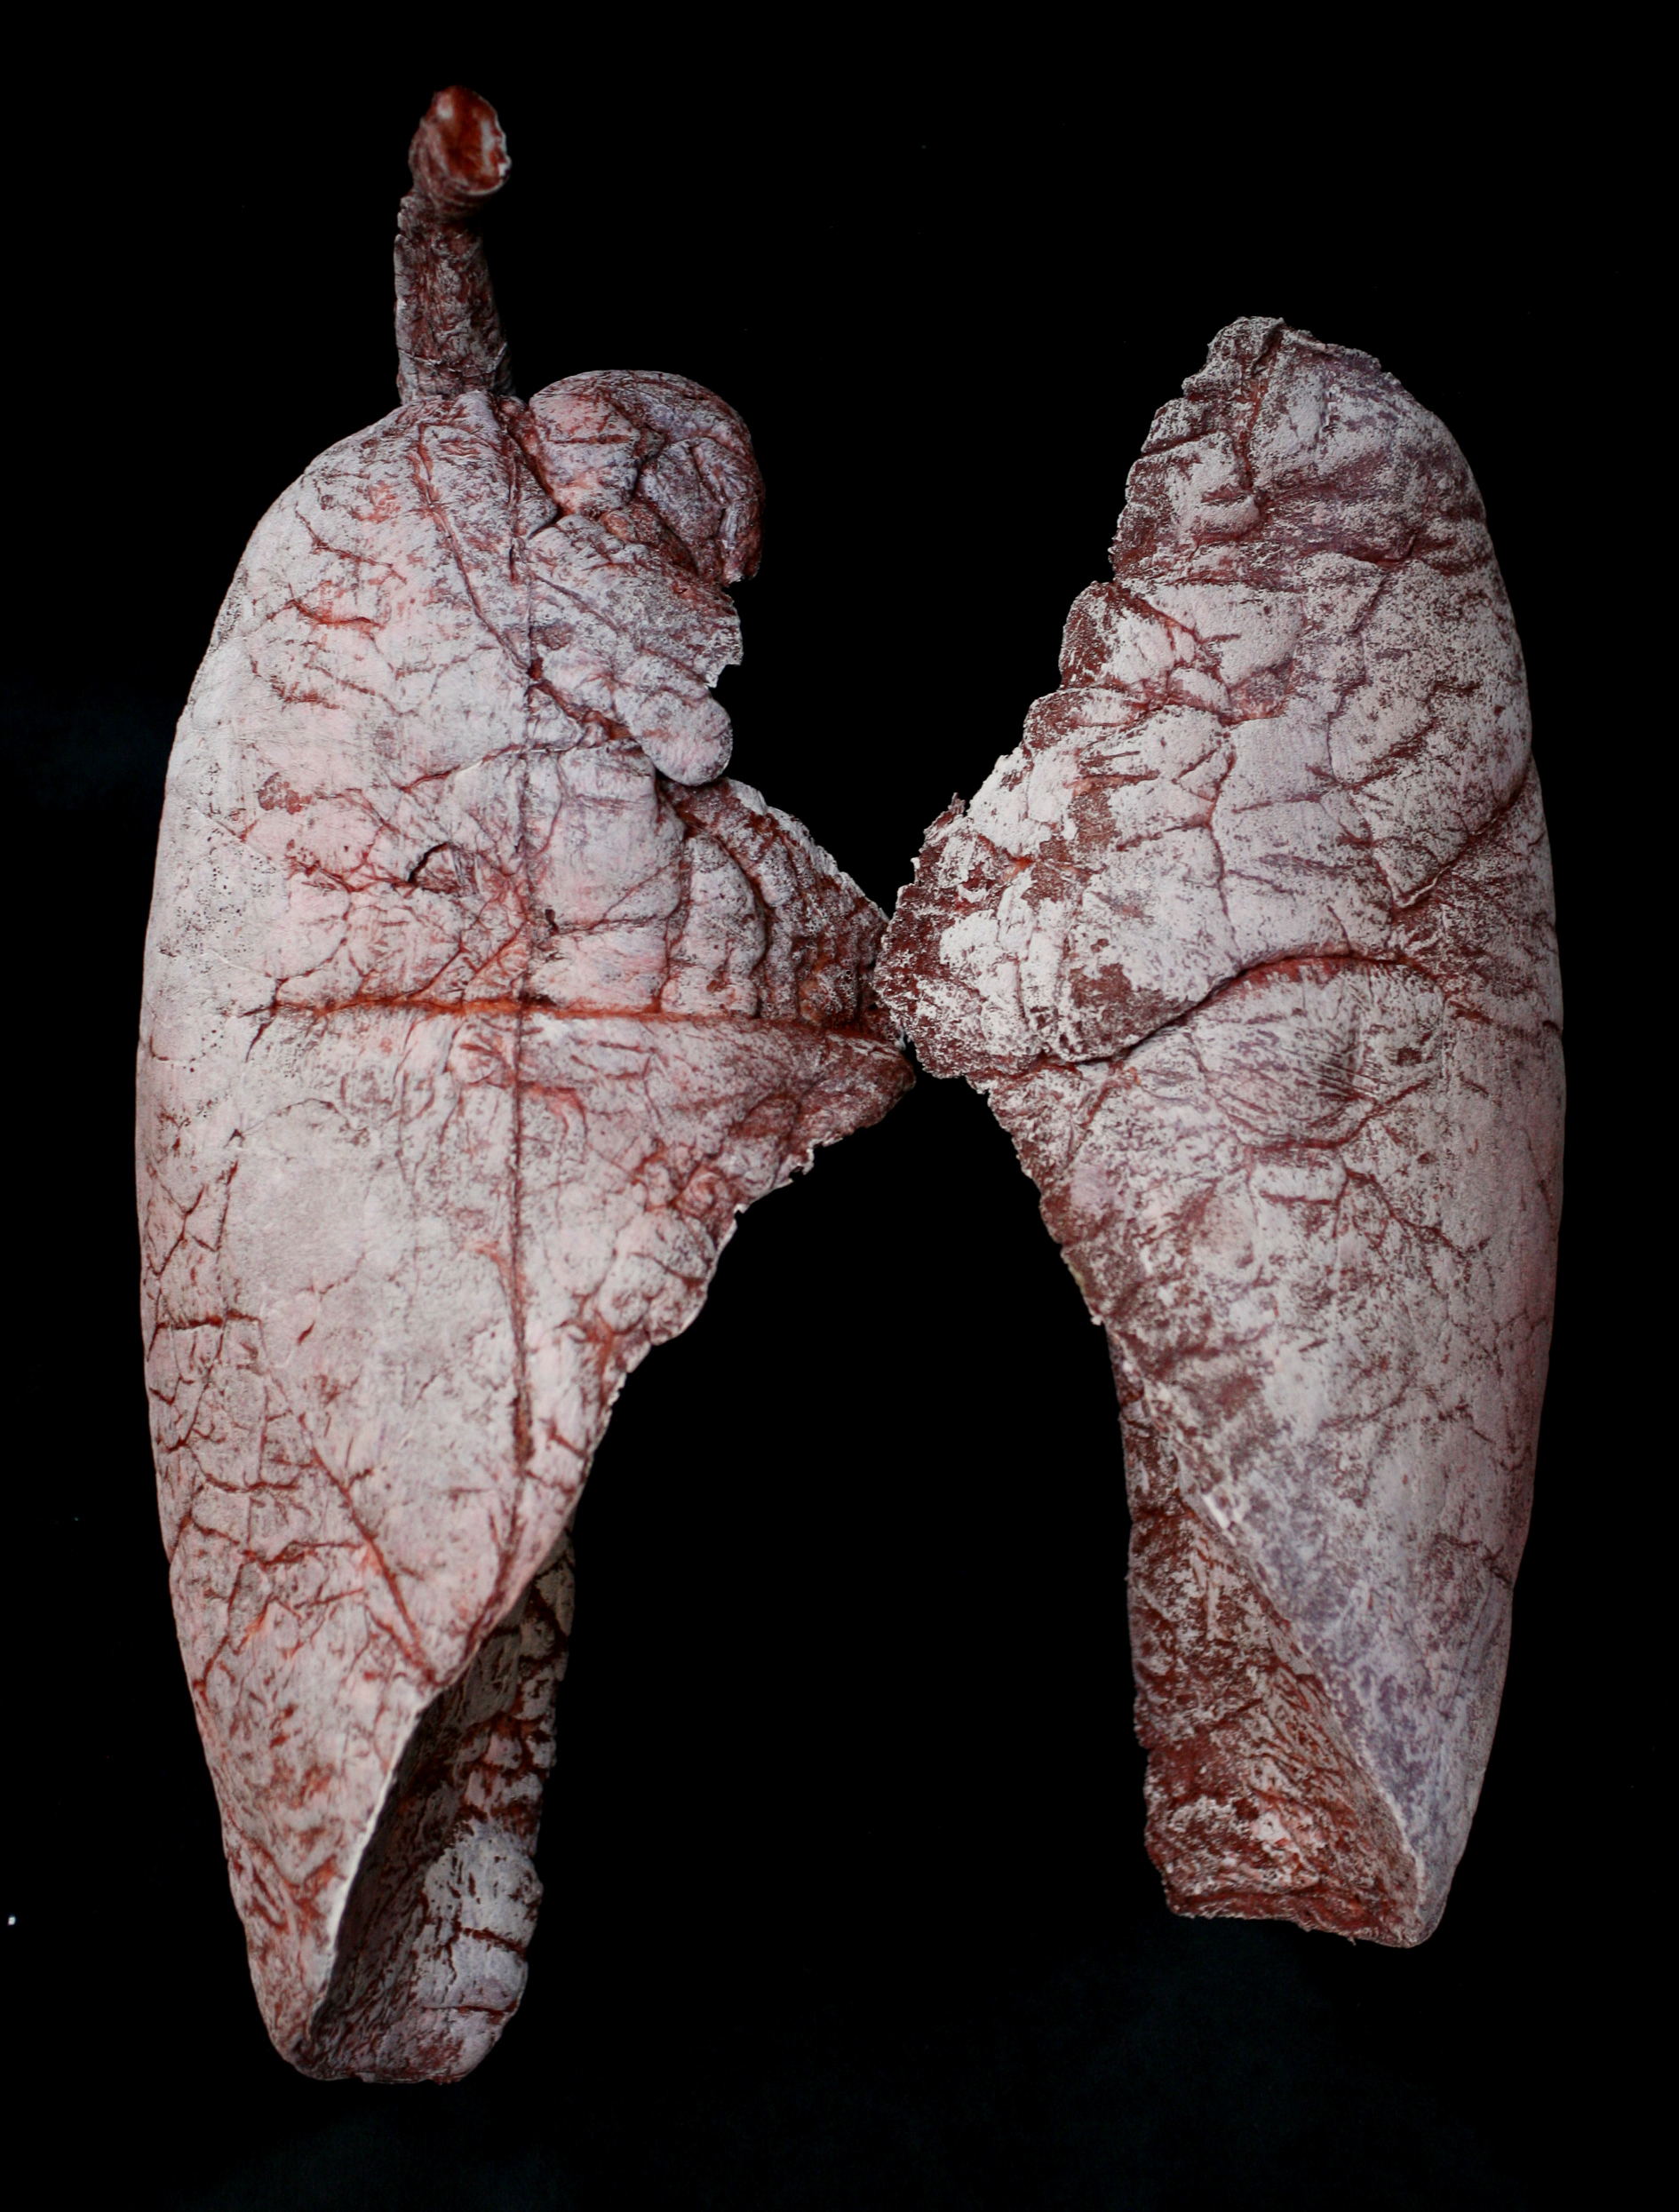 Gallery images and information: Real Human Lungs